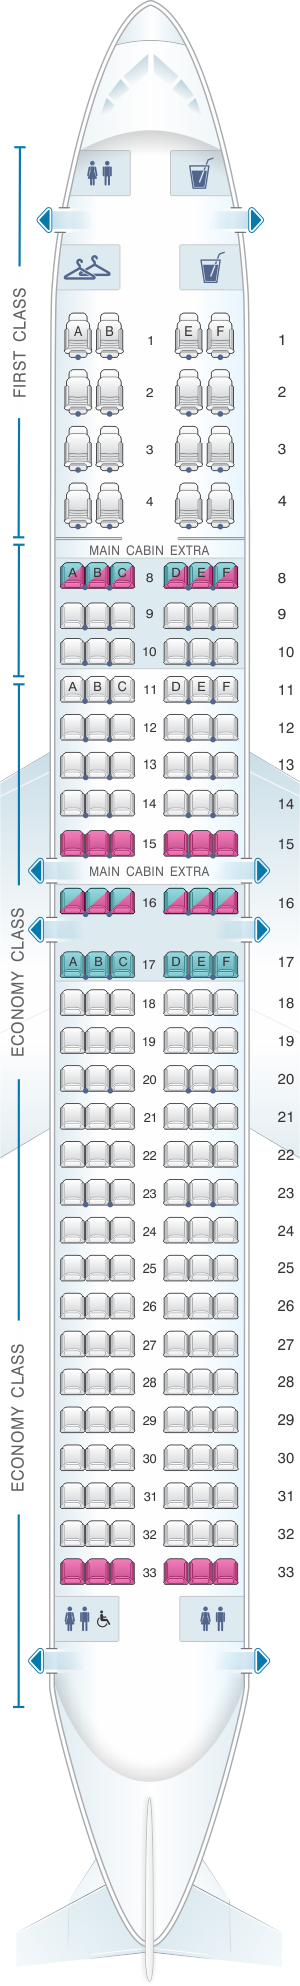 Seat map for American Airlines Boeing B737 MAX